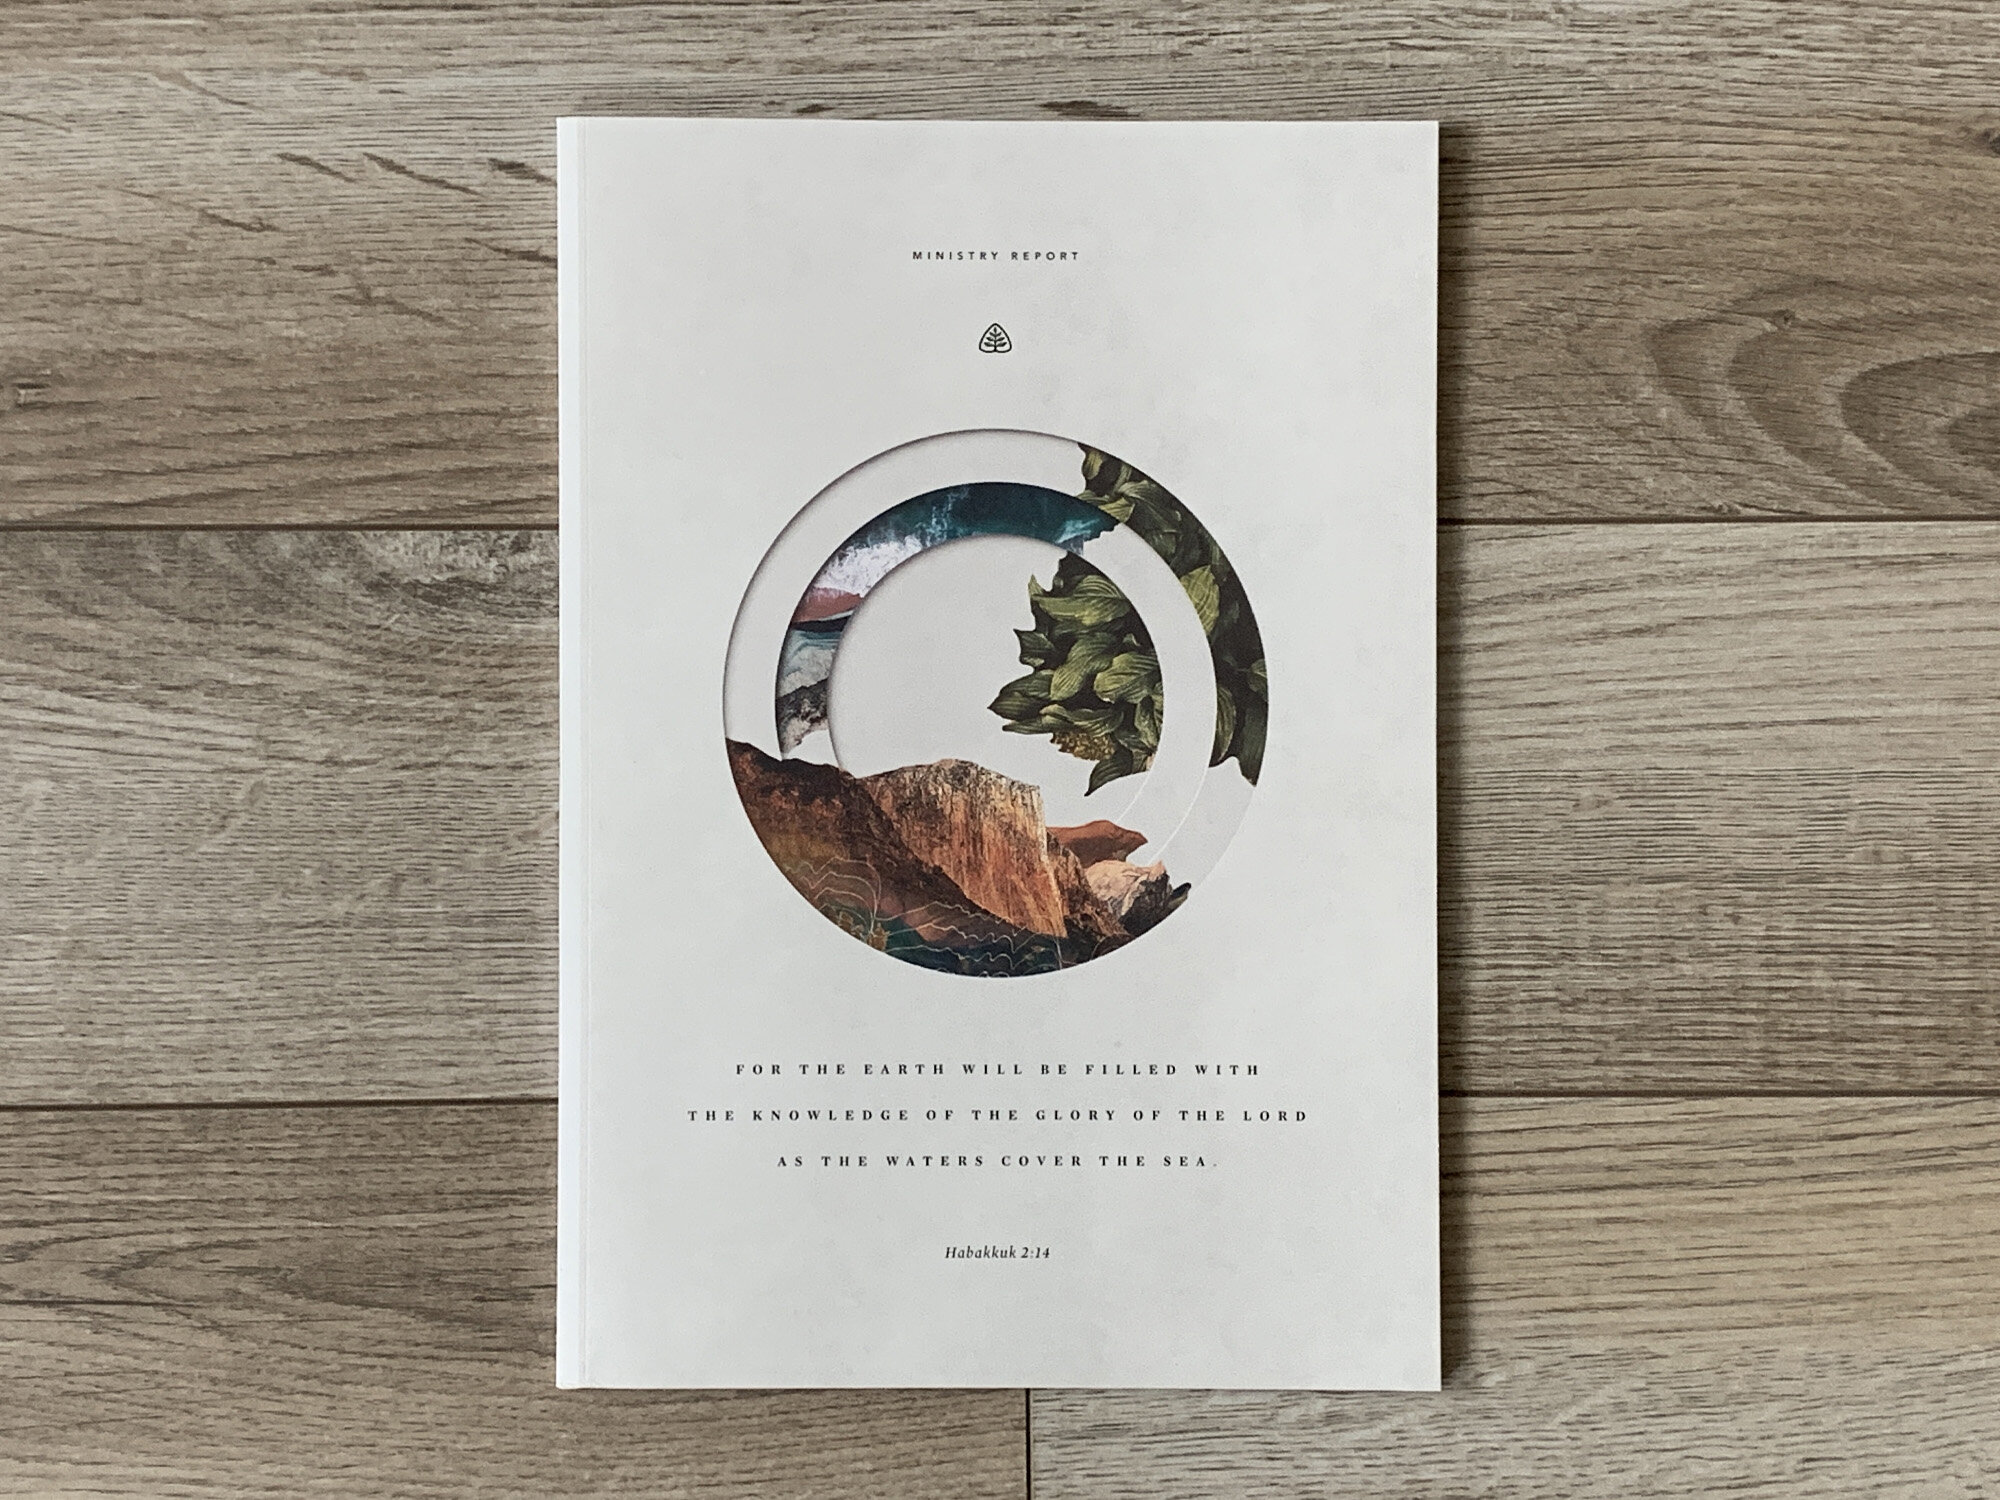 Cover and feature visuals for Ligonier's 2018 Ministry Report